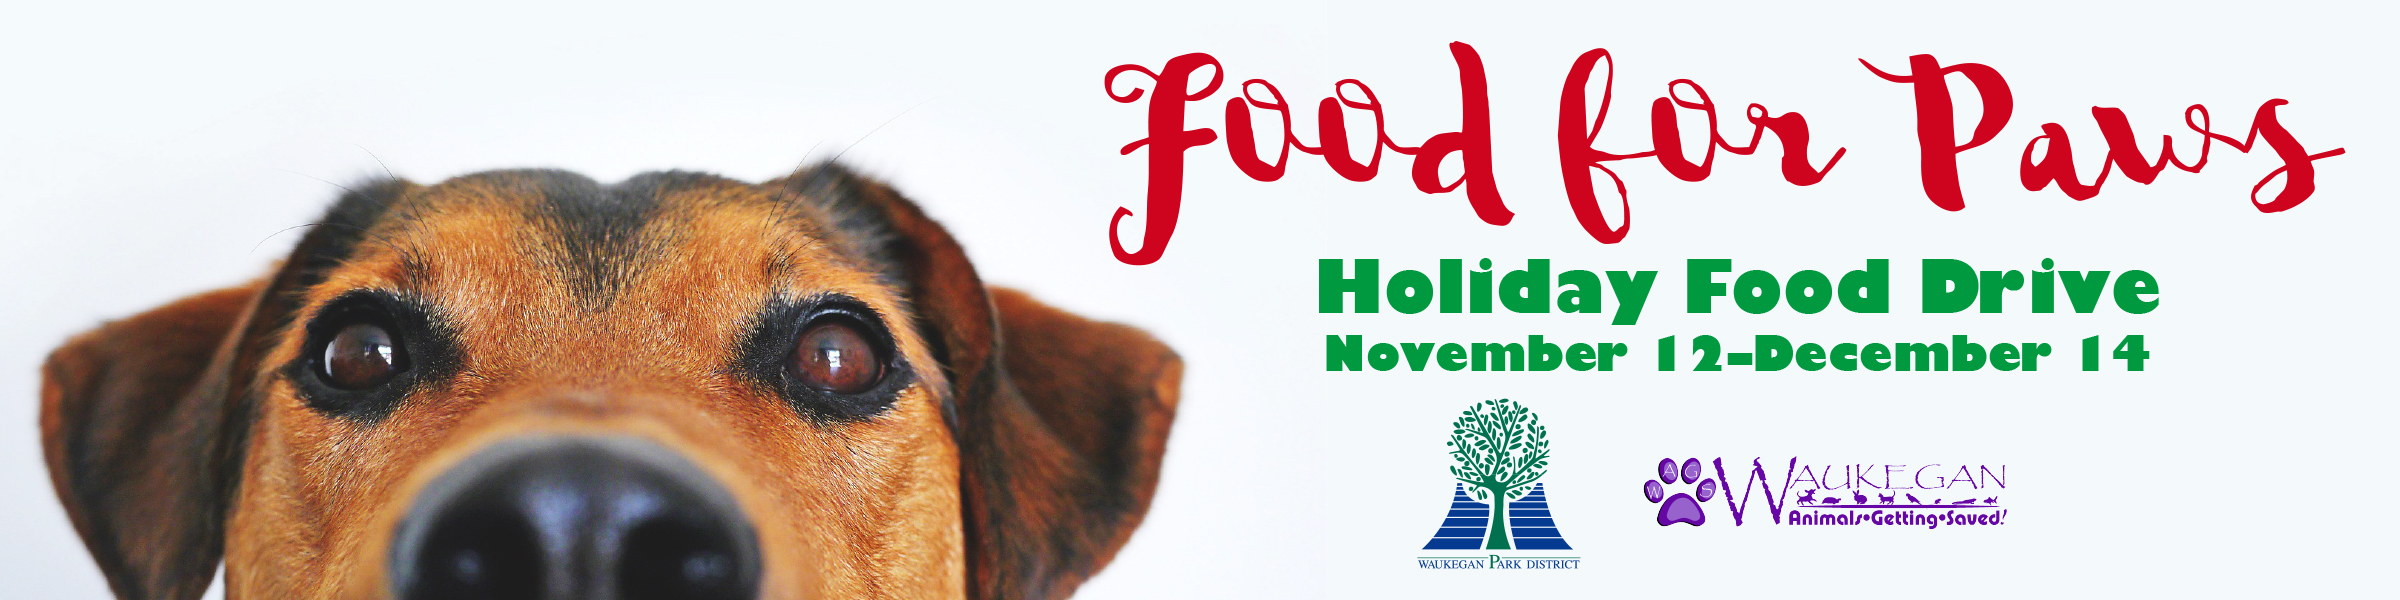 Food for Paws Banners